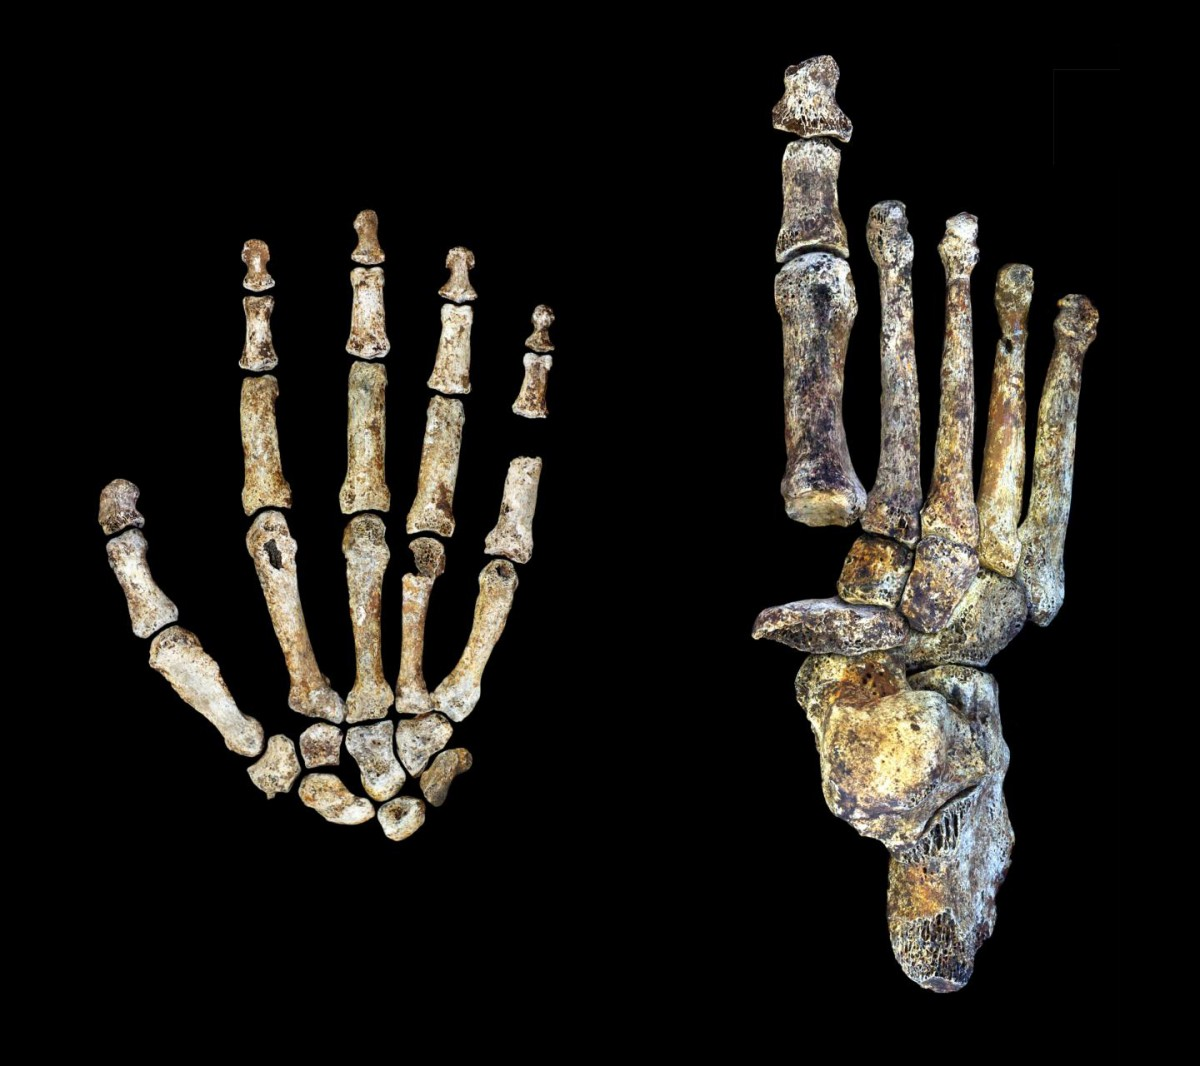 The Homo naledi hand and foot were uniquely adapted for both tree climbing and walking upright. Credit: Peter Schmid and William Harcourt-Smith/Wits University.